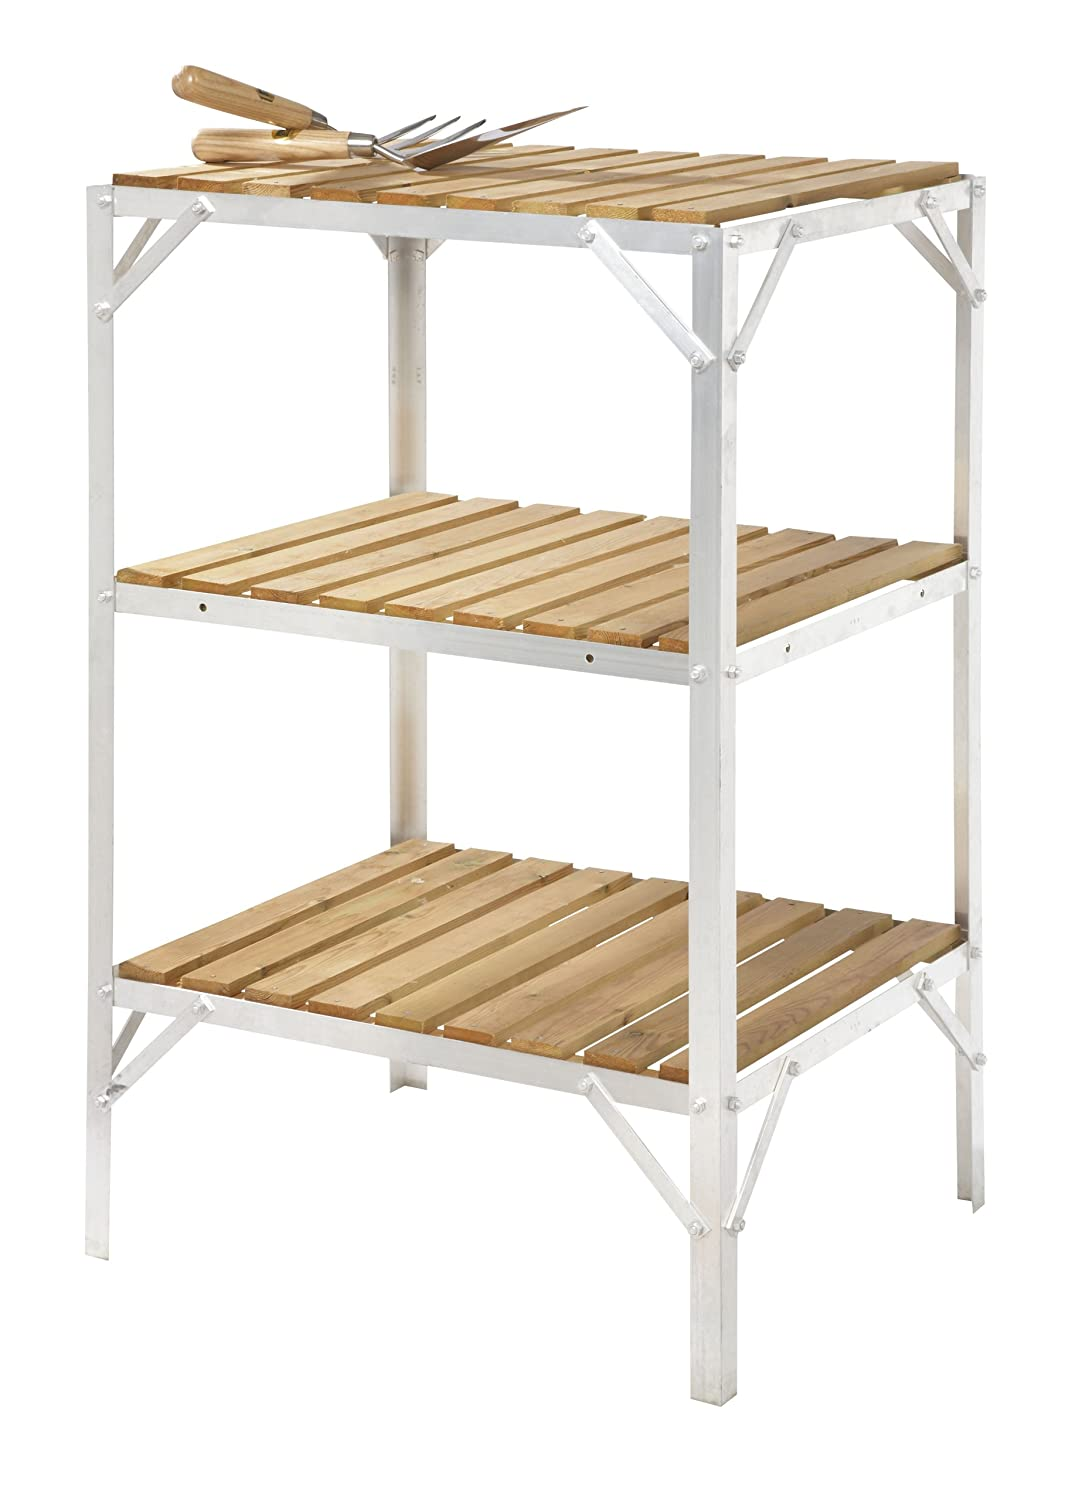 Greenhouse Staging / Bench Wooden Three Tier 18